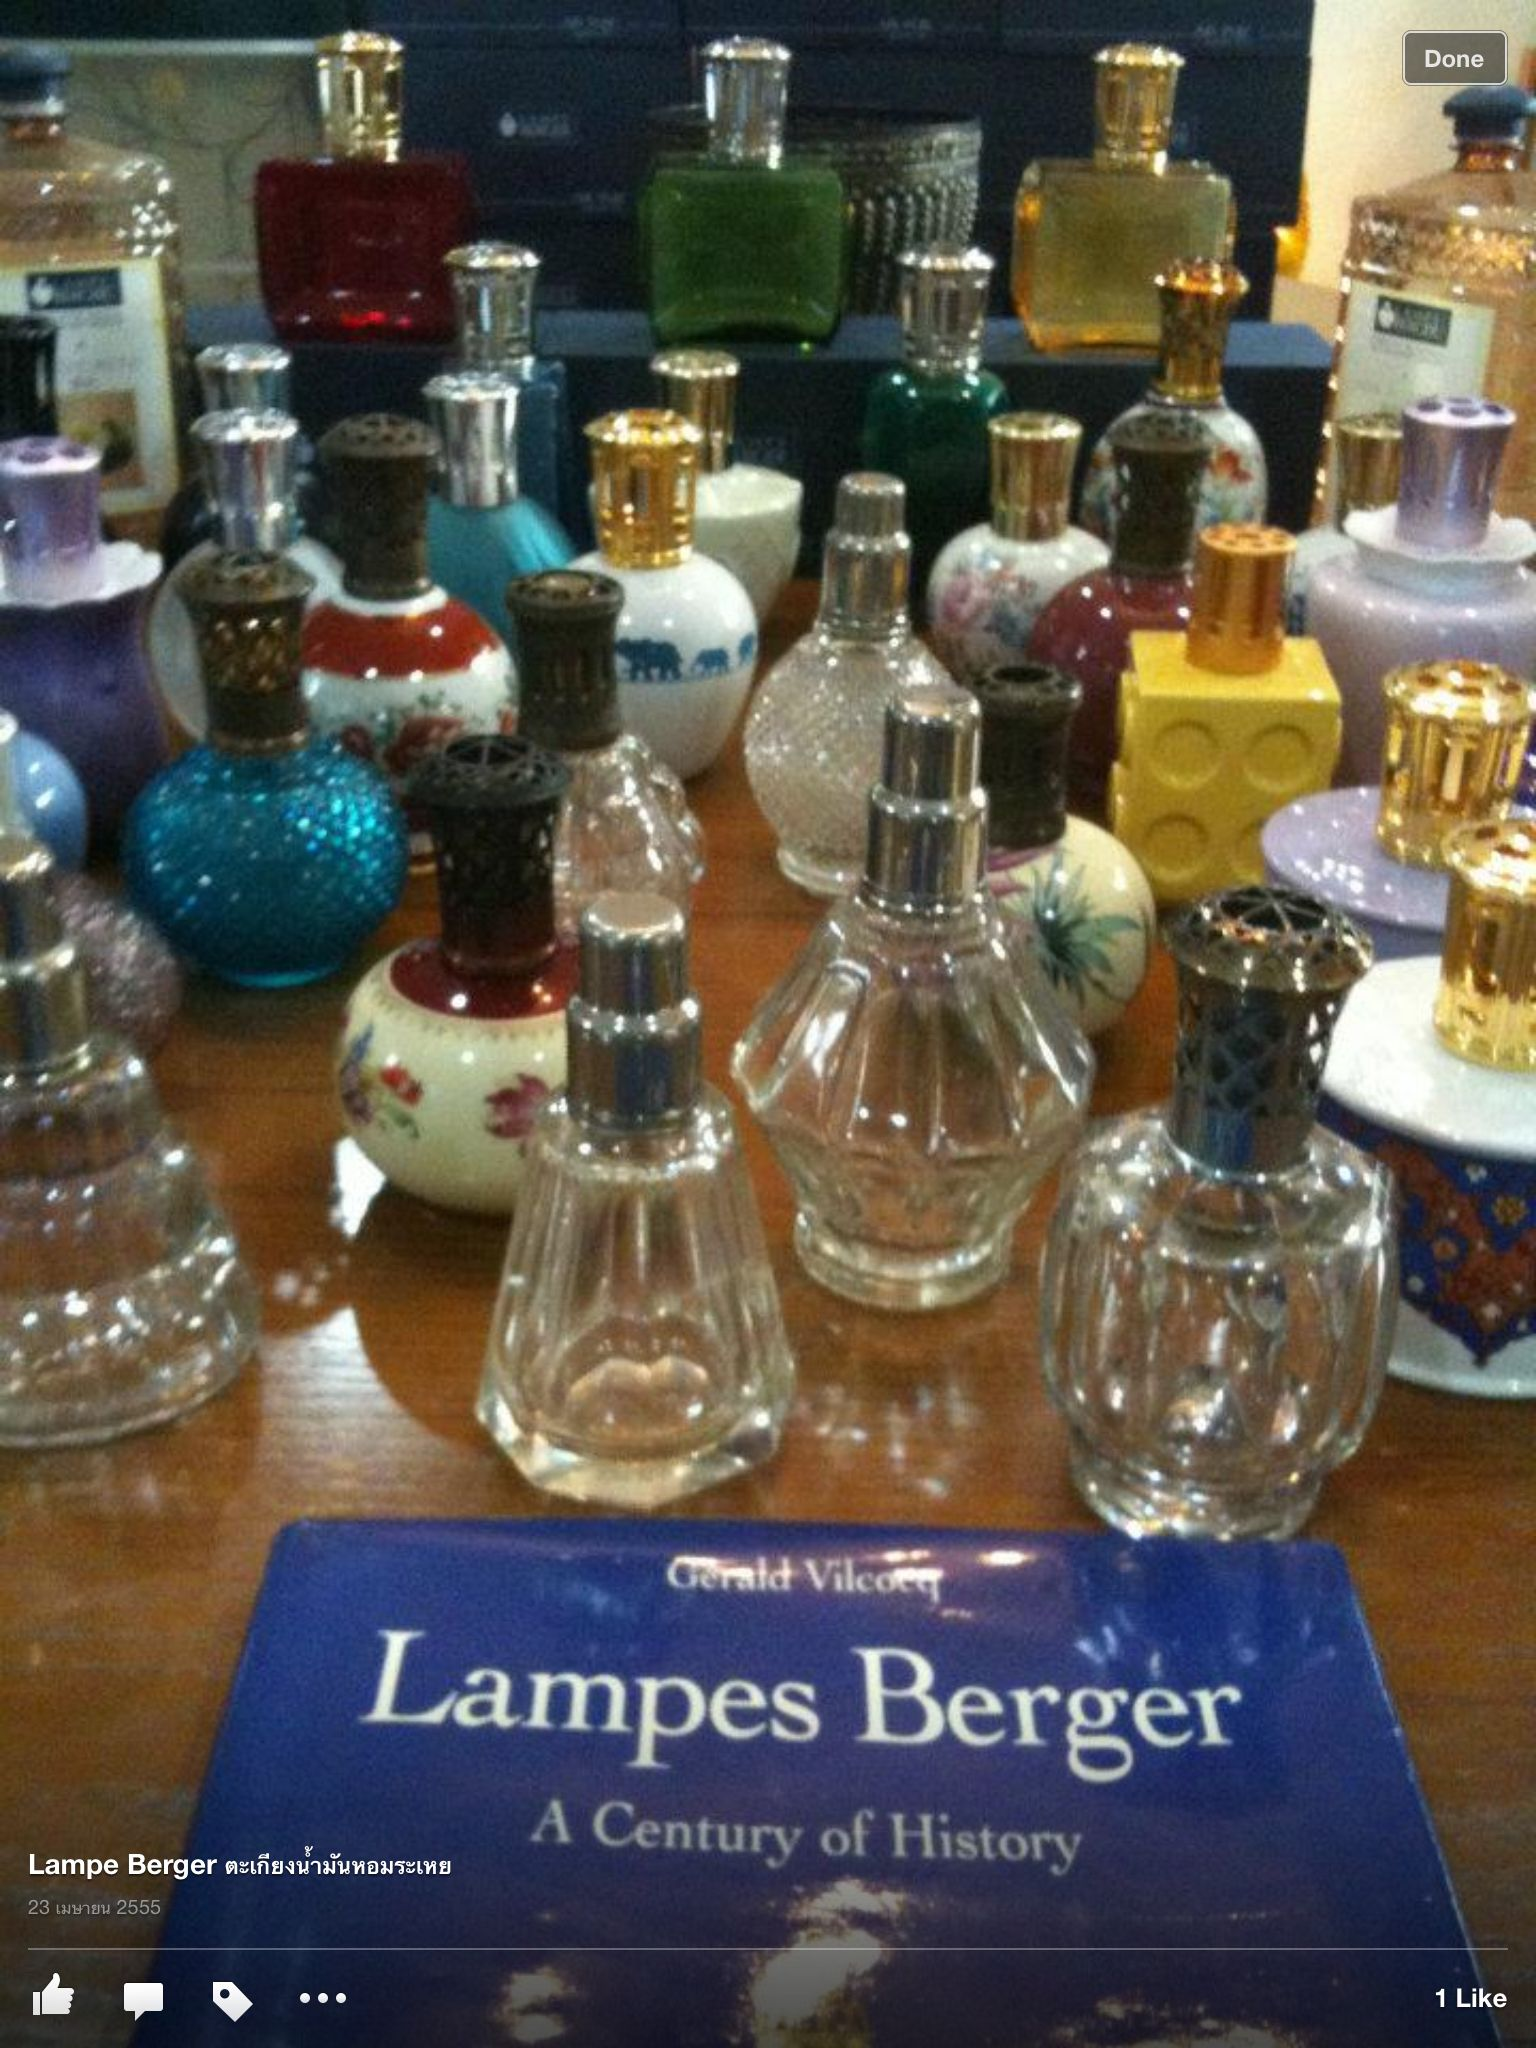 Lampe Berger diffusers collection from FB Page https://www.facebook.com/media/set/?set=a.131474676928732.31689.116645285078338=3